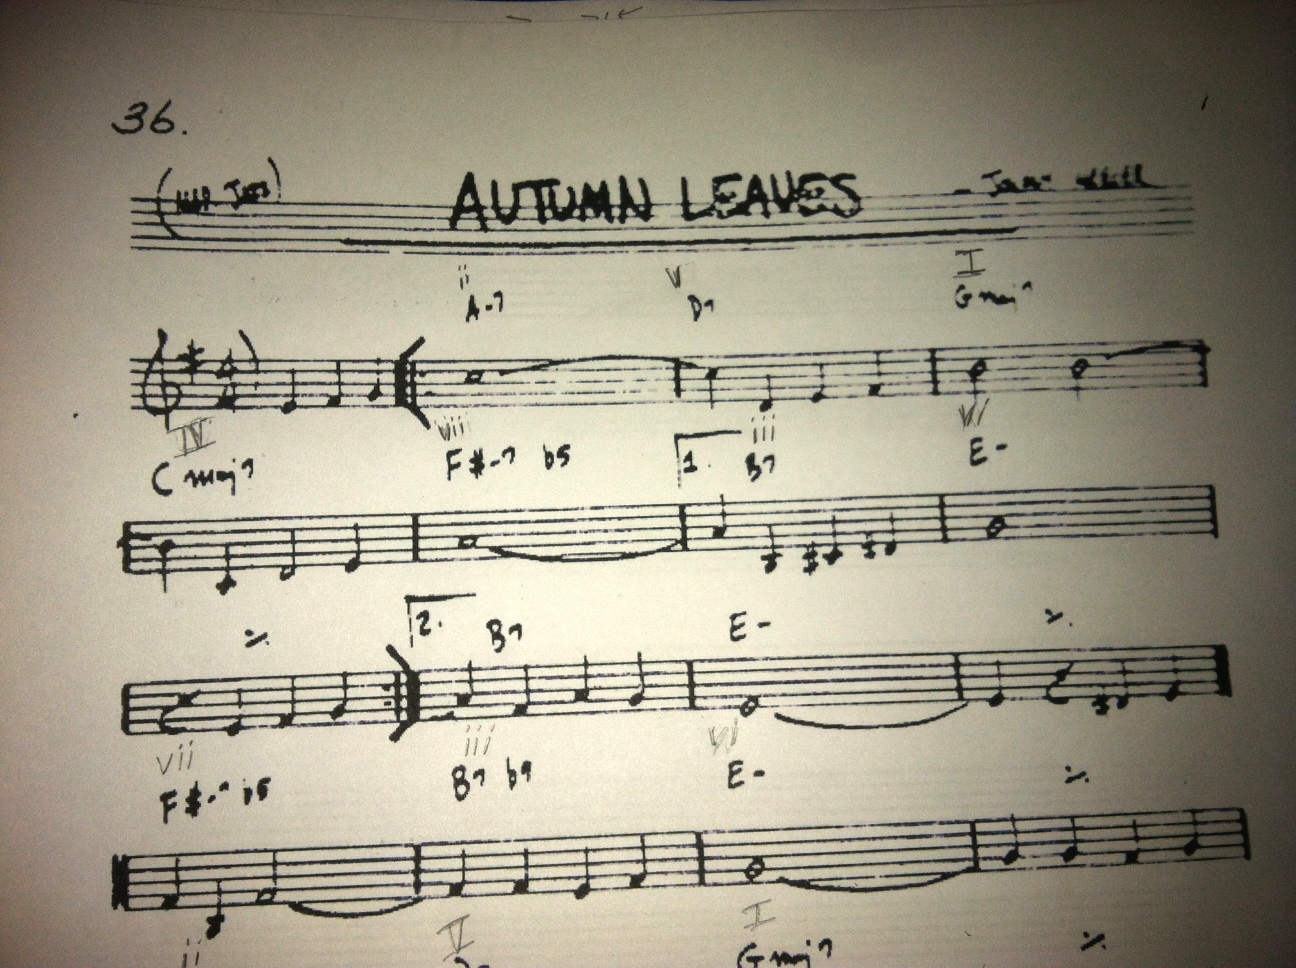 Questions About Autumn Leaves Chord Progressions How To Read Diagrams Or Stamps Chords